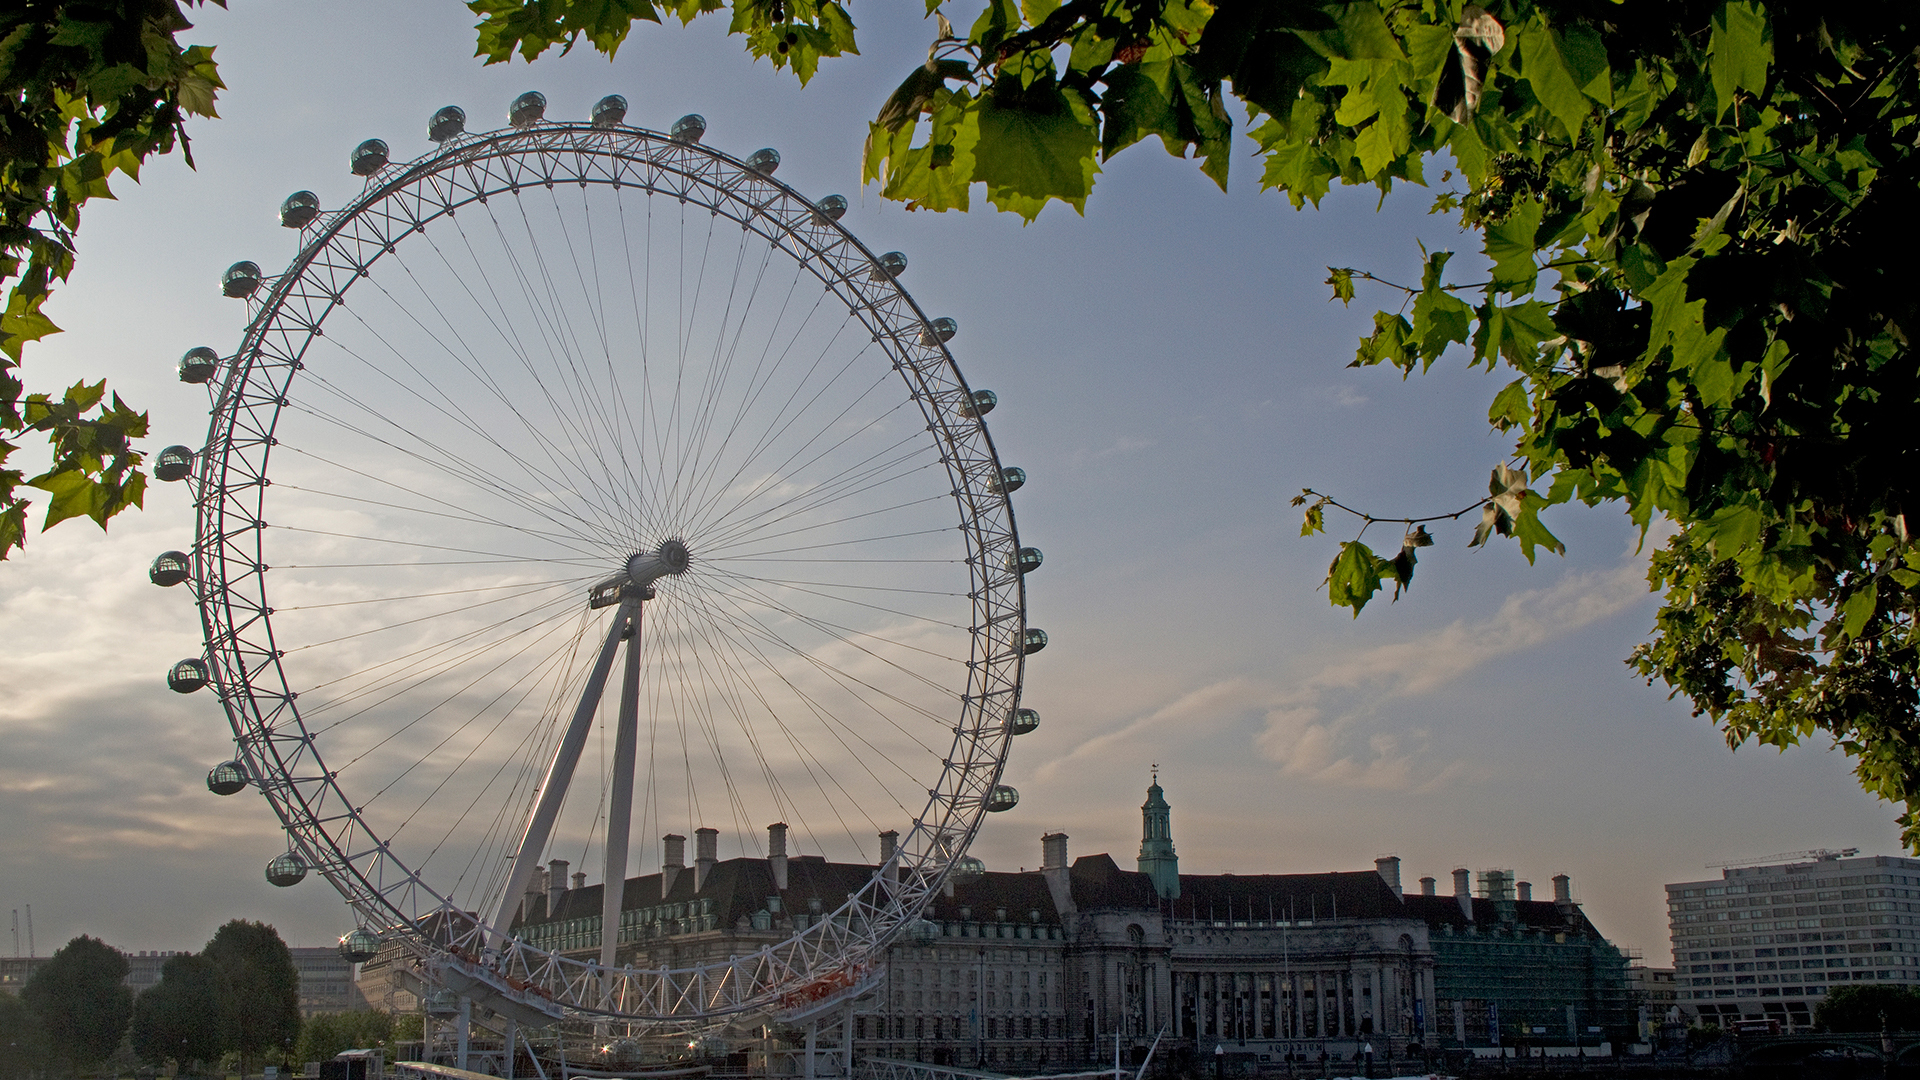 London Eye from Southbank with trees surrounding